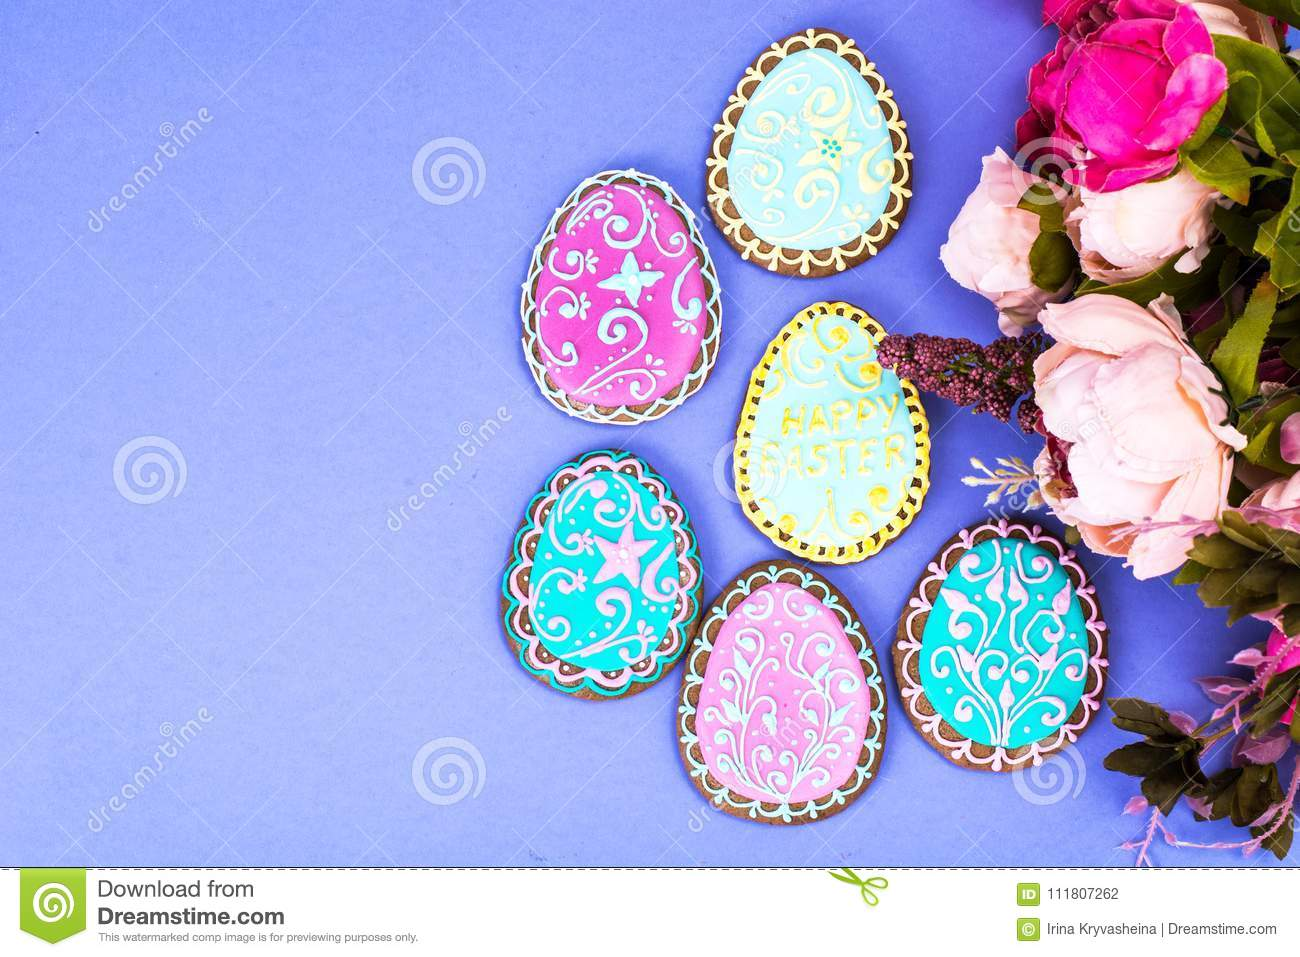 Easter eggs formed as tasty homemade cookies on bright background